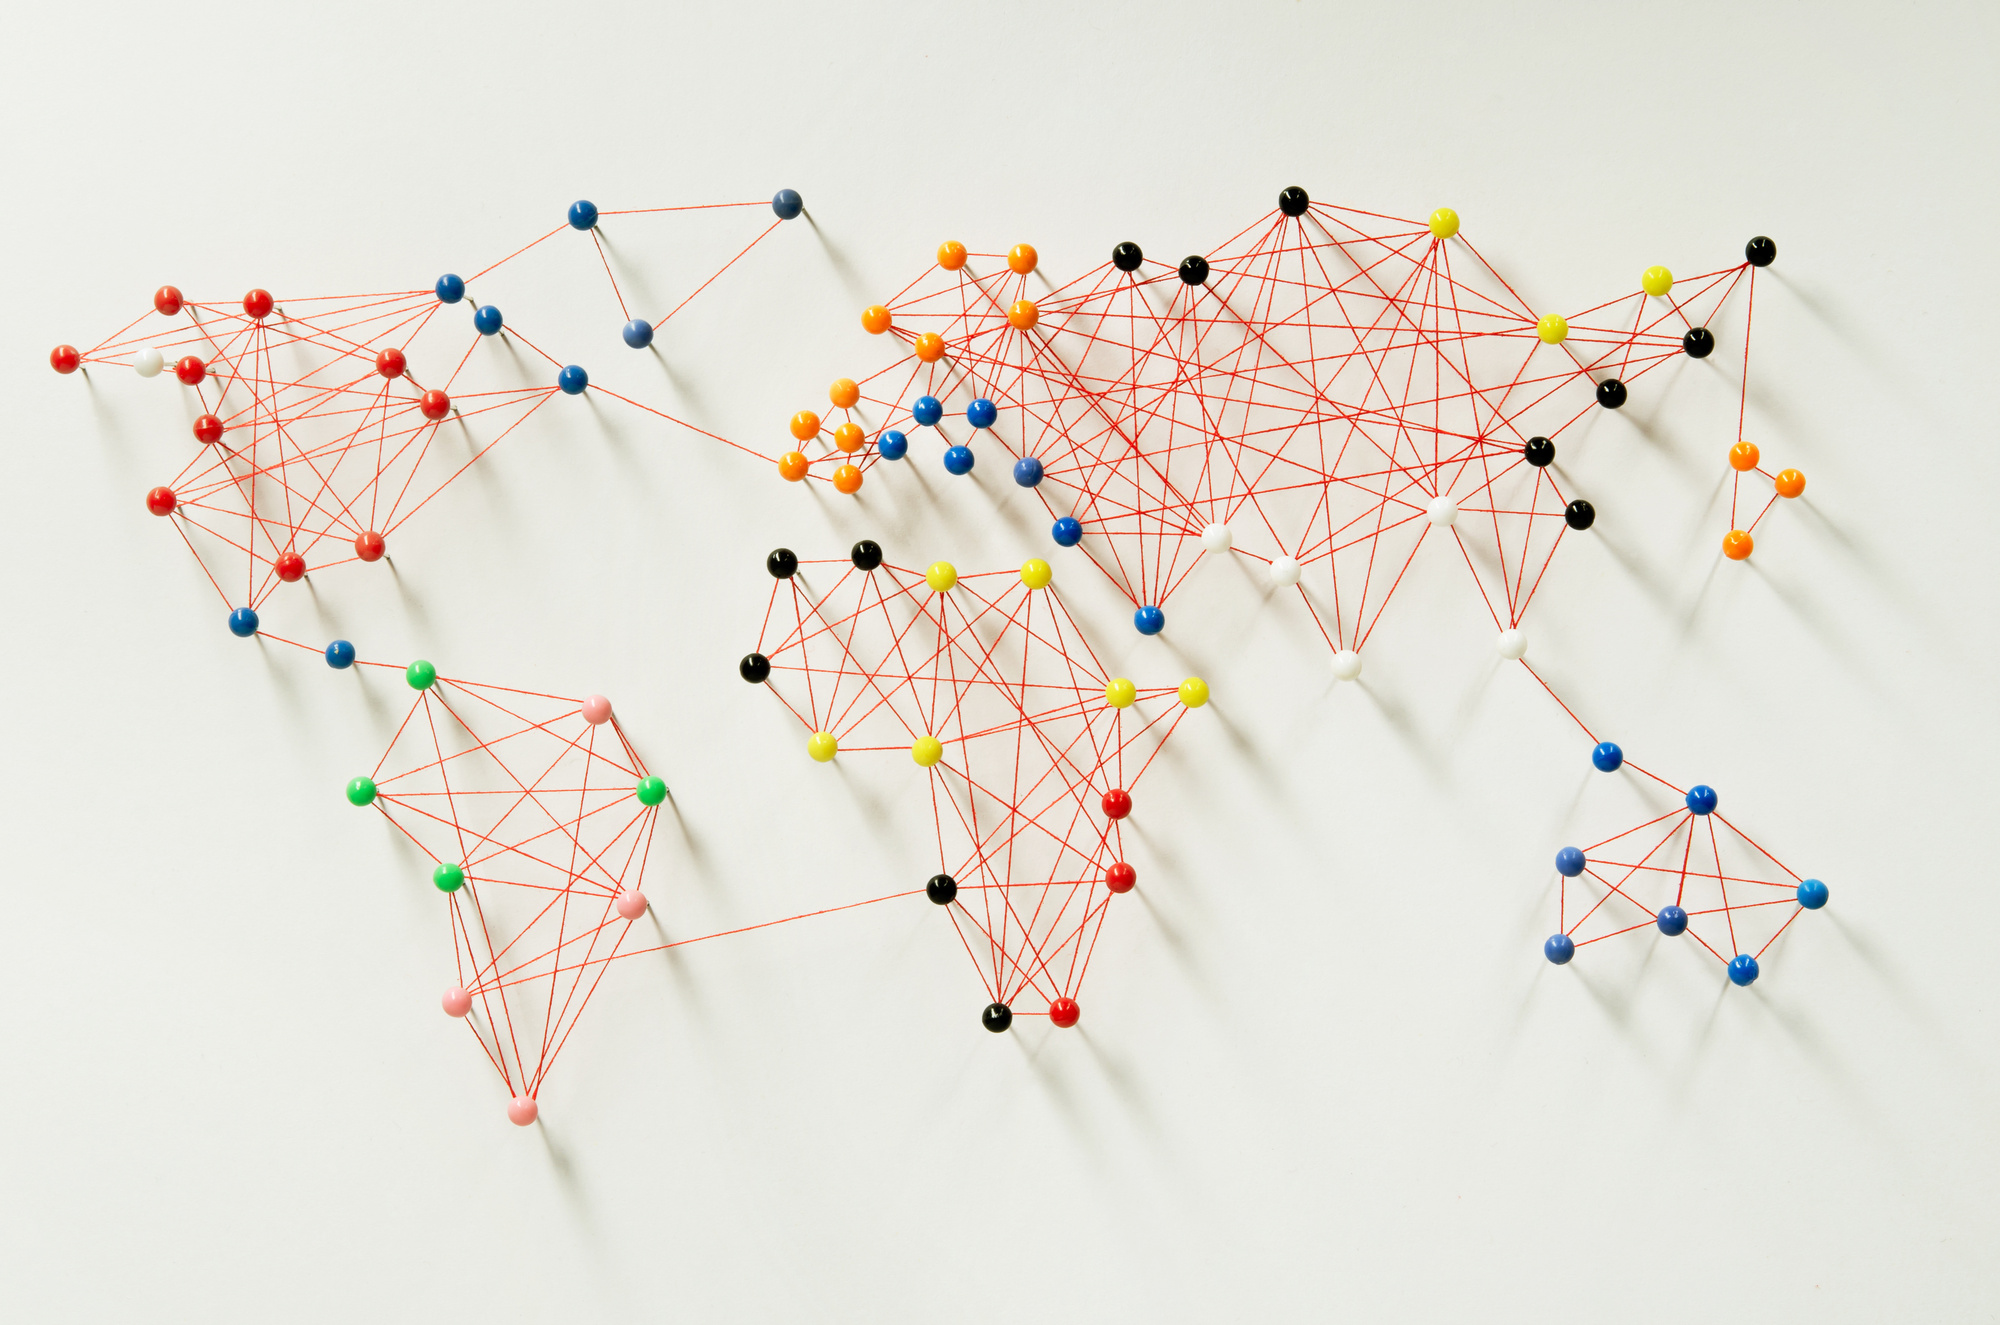 Global connections - Consulting services